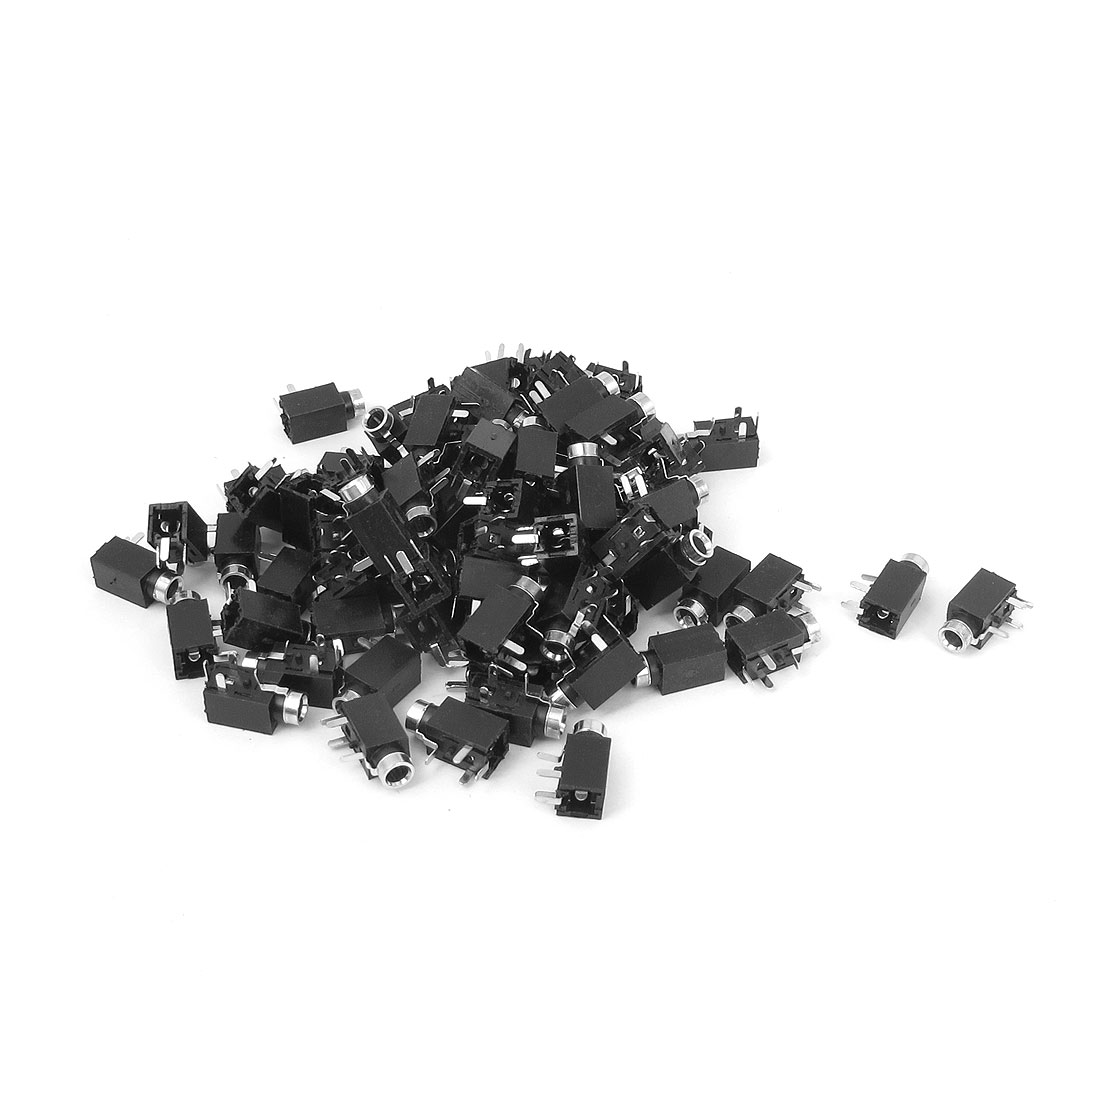 80 Pcs PCB Mounting 4 Terminals Female 2.5mm Stereo Audio Jack Socket Adapter Connector